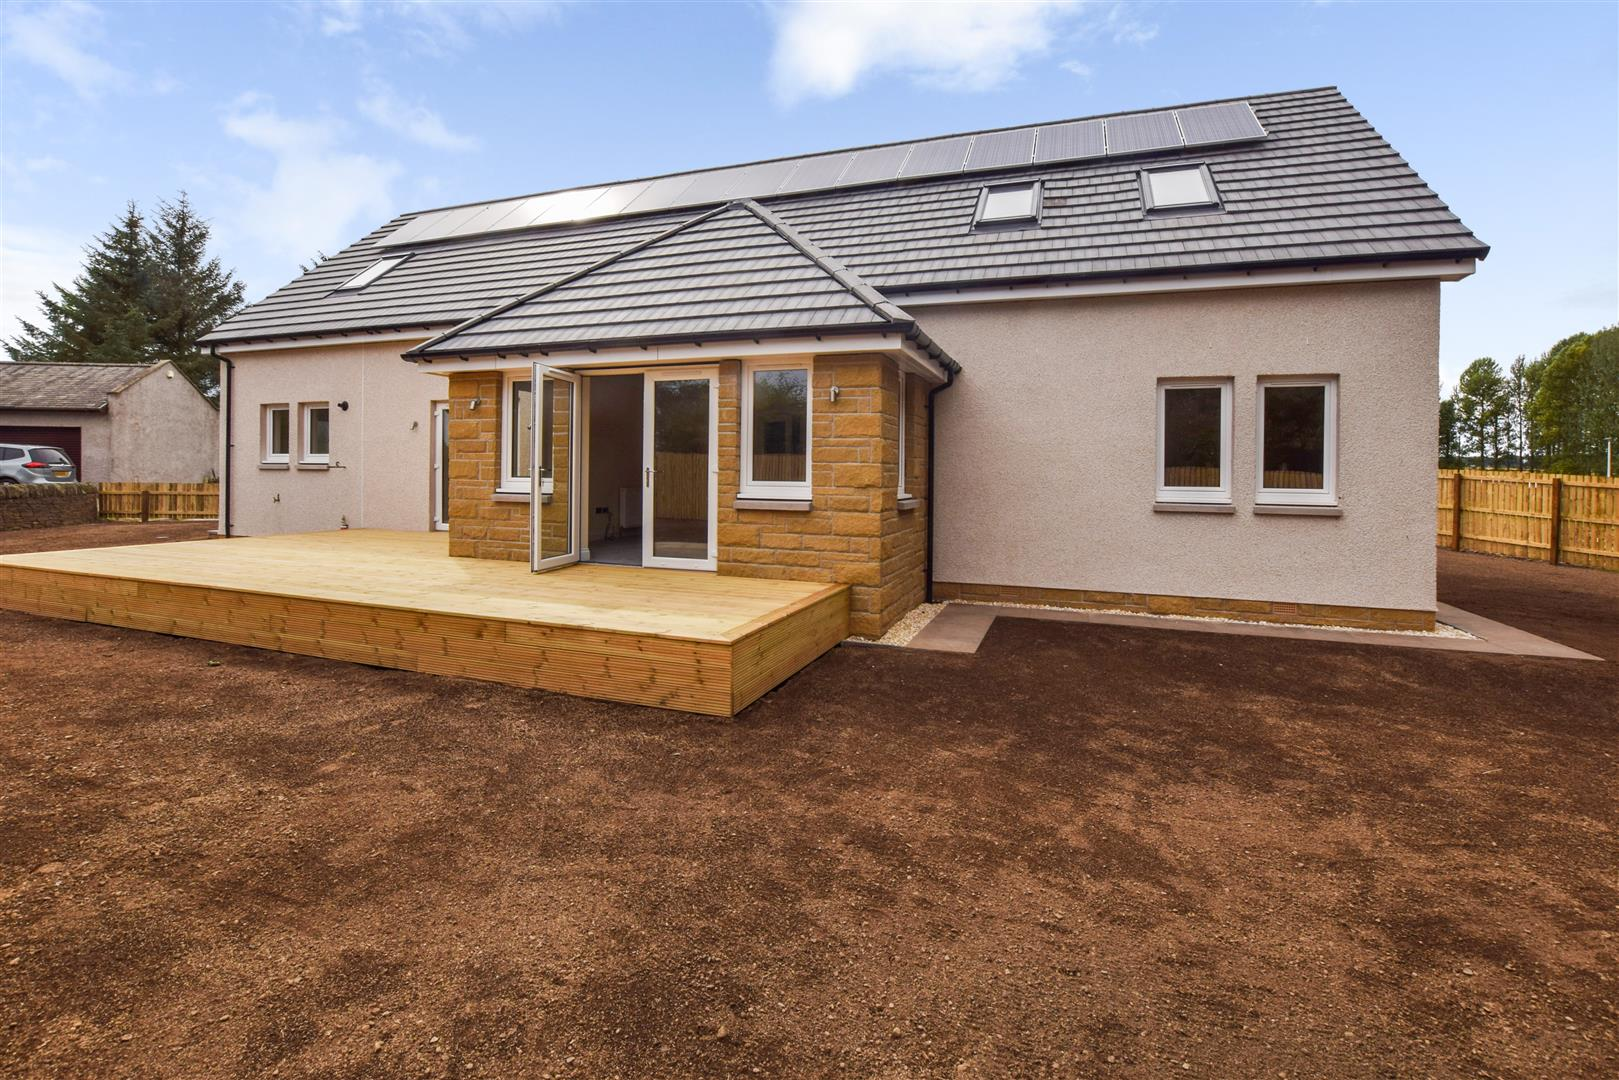 New House, Westhill Road, Kellas, Broughty Ferry Dundee, Angus, DD5 3PD, UK